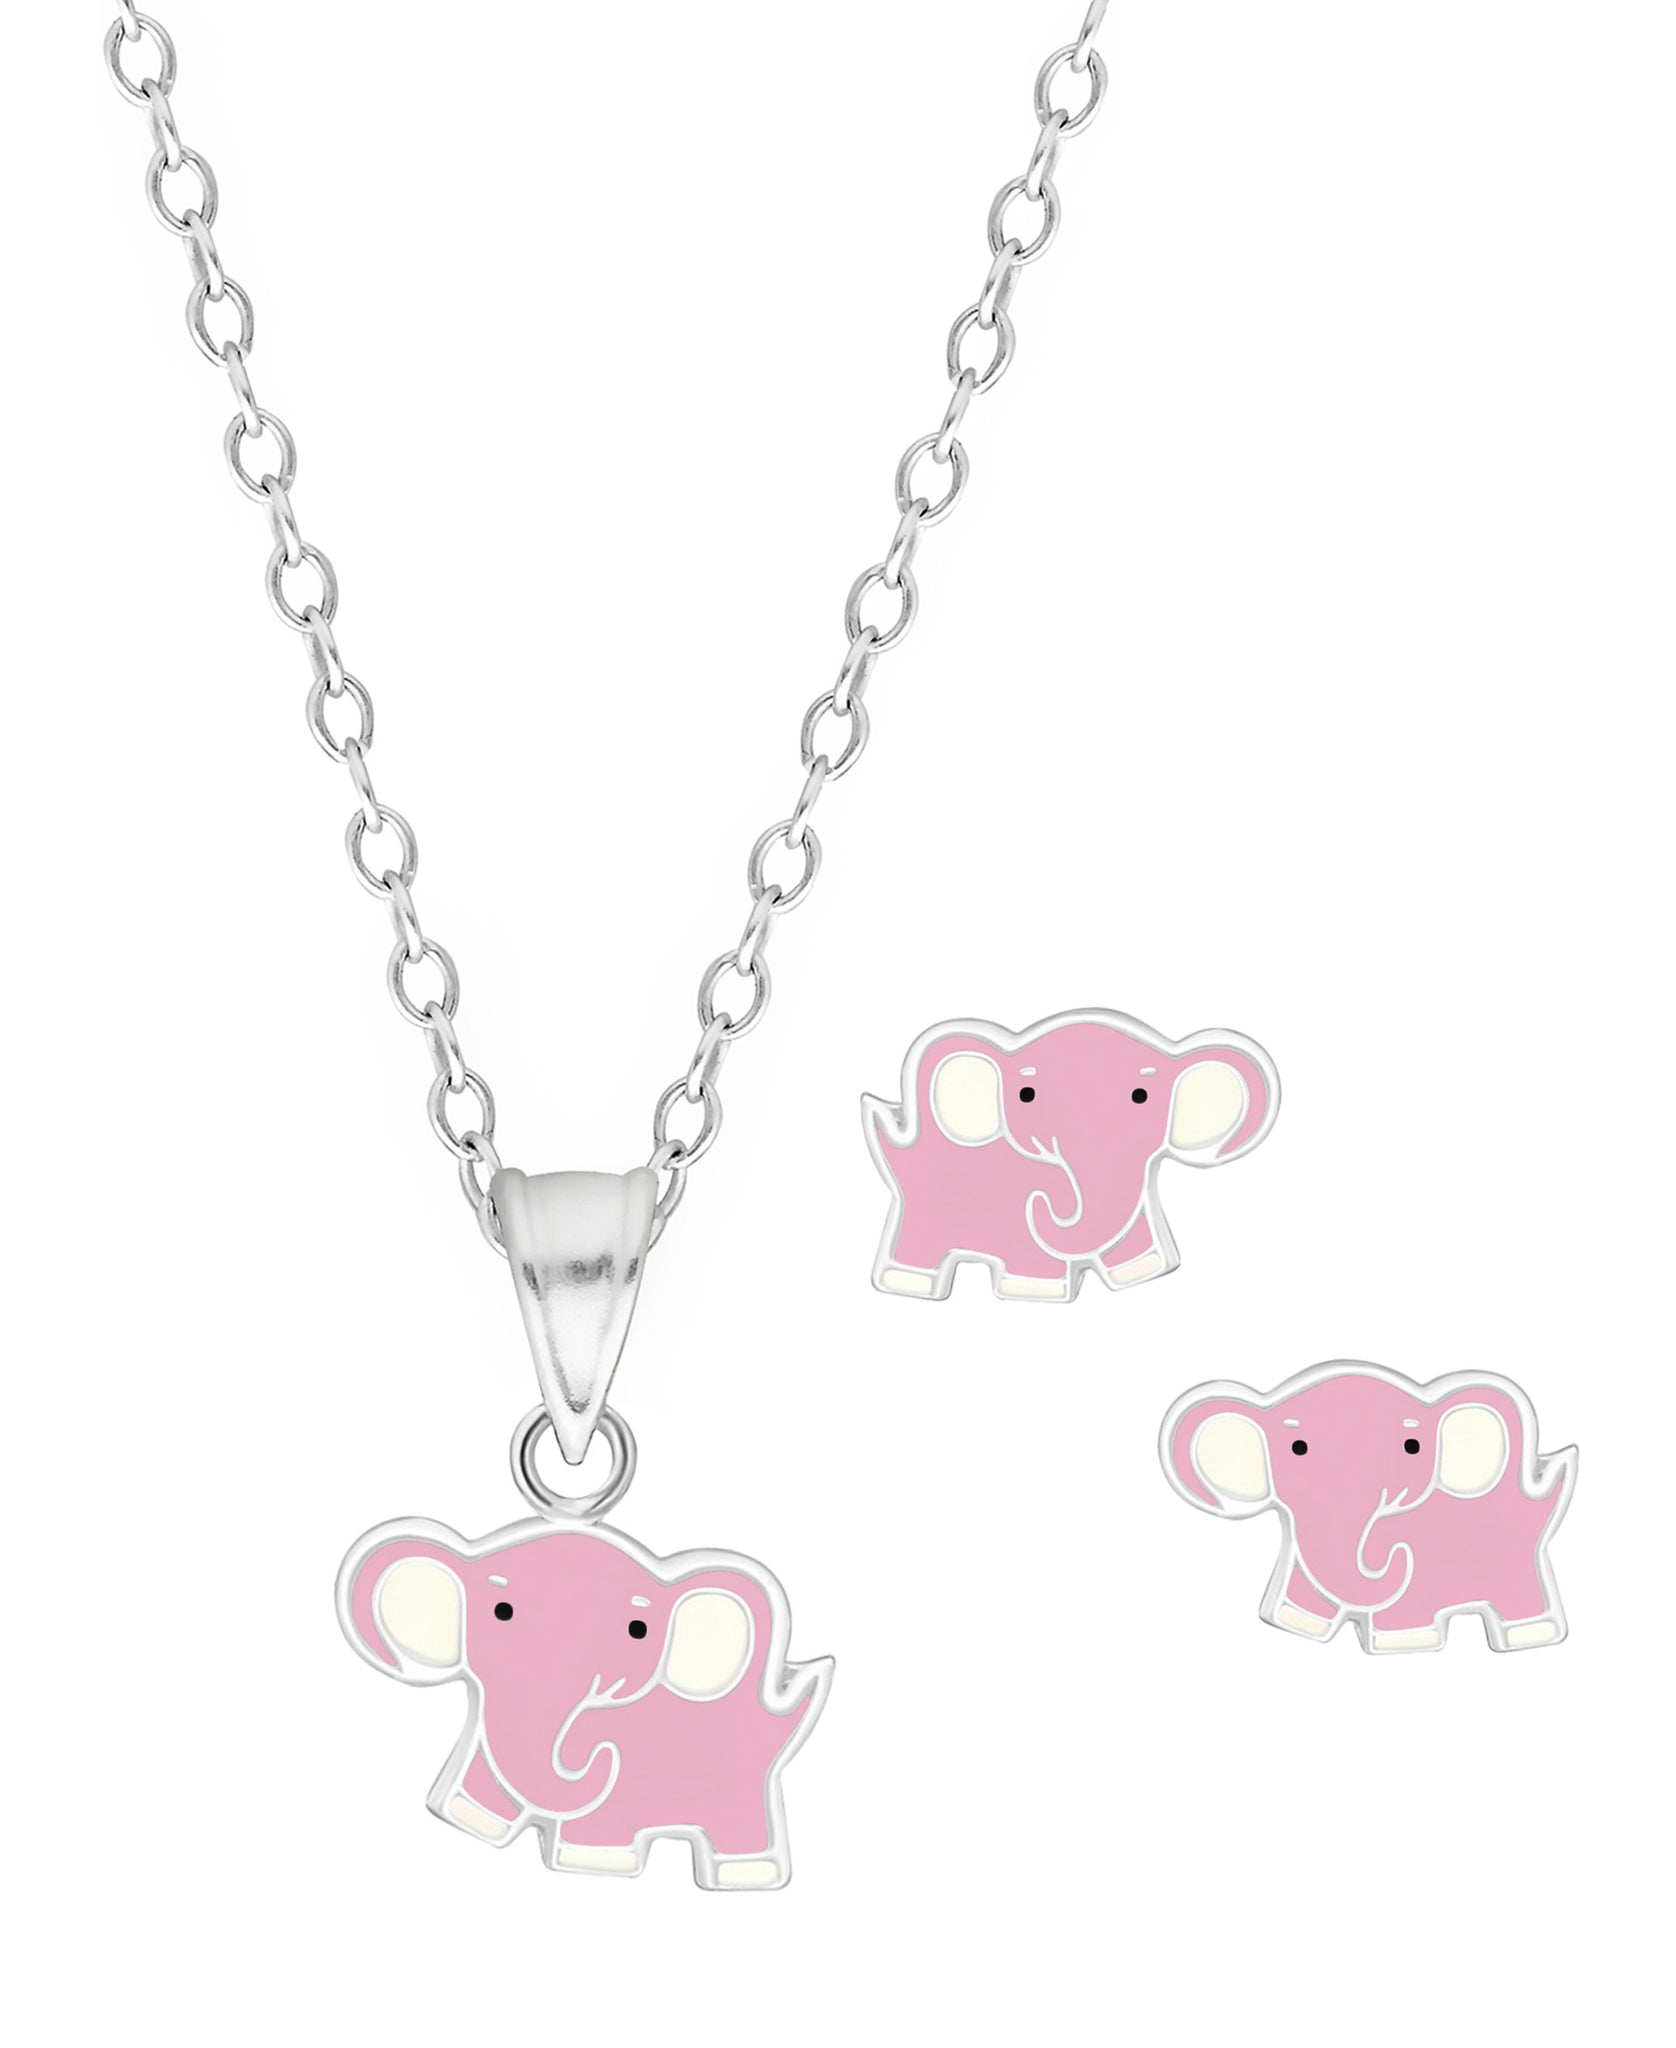 Children's Sterling Silver Elephant Pendant Necklace & Stud Earrings Set - Rhona Sutton Jewellery